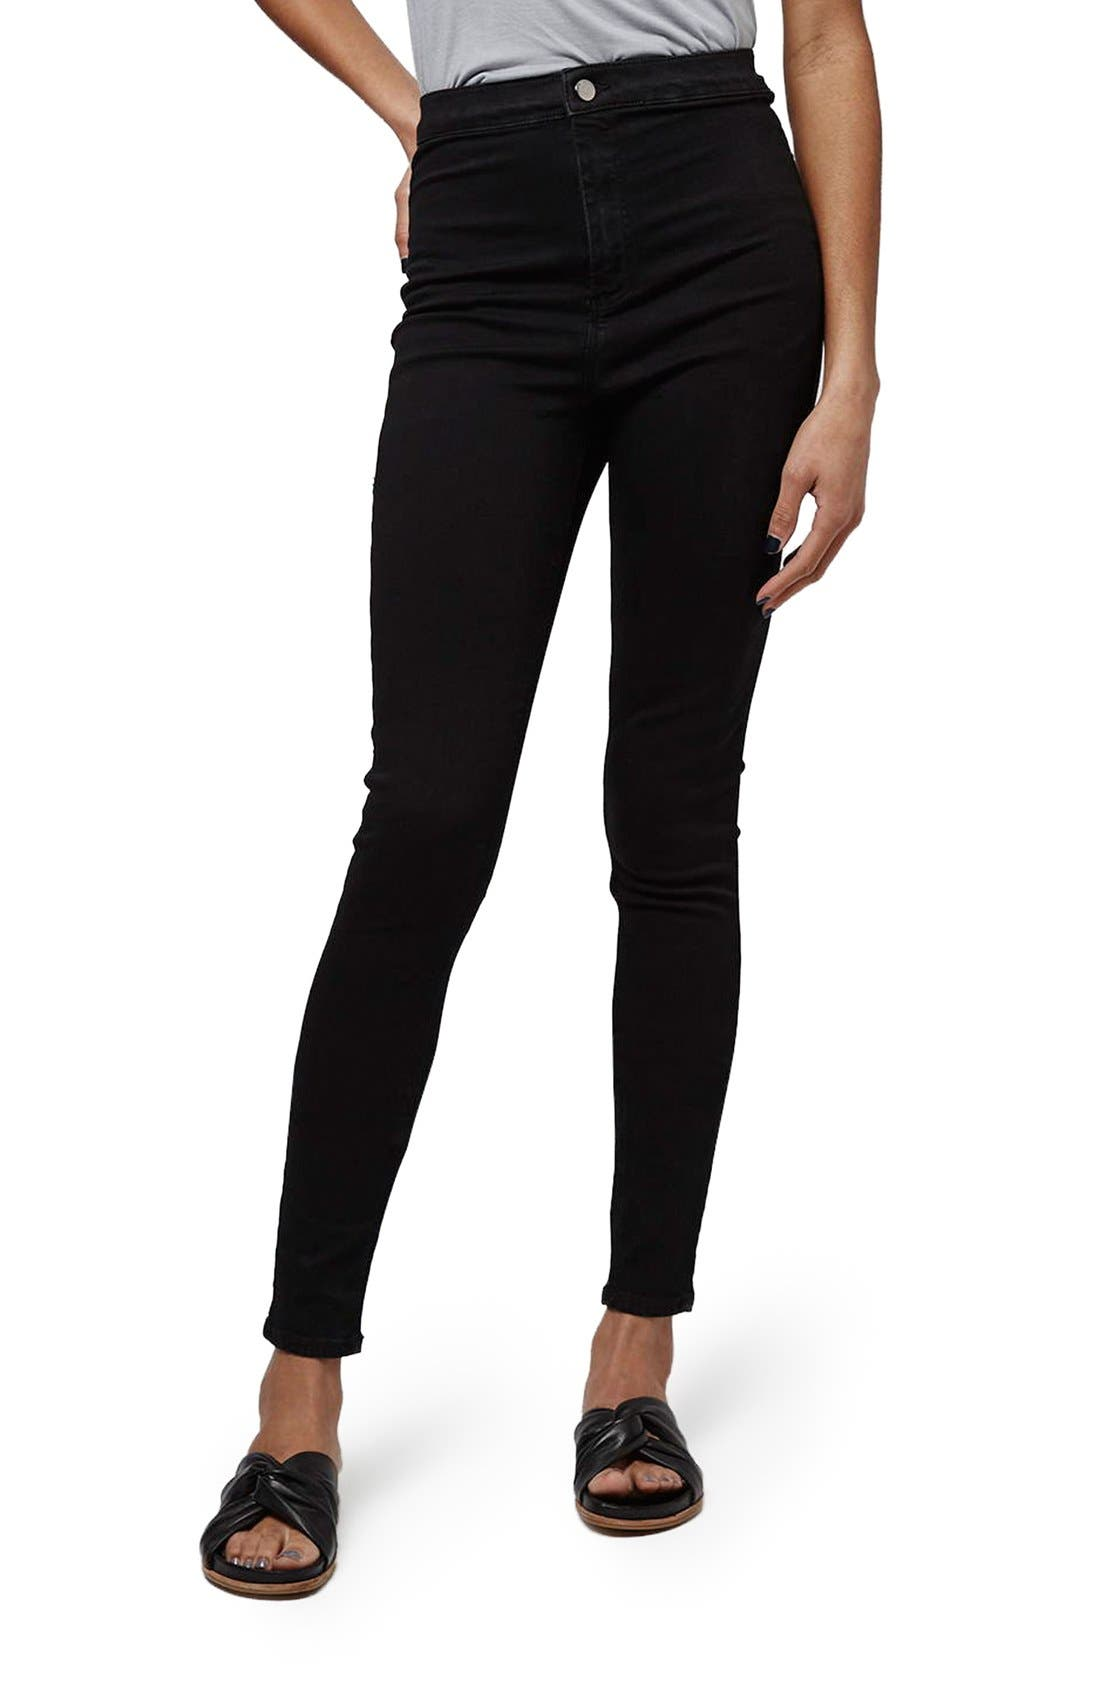 Alternate Image 1 Selected - Topshop 'Joni - Holding Power' High Waist Skinny Jeans (Tall)